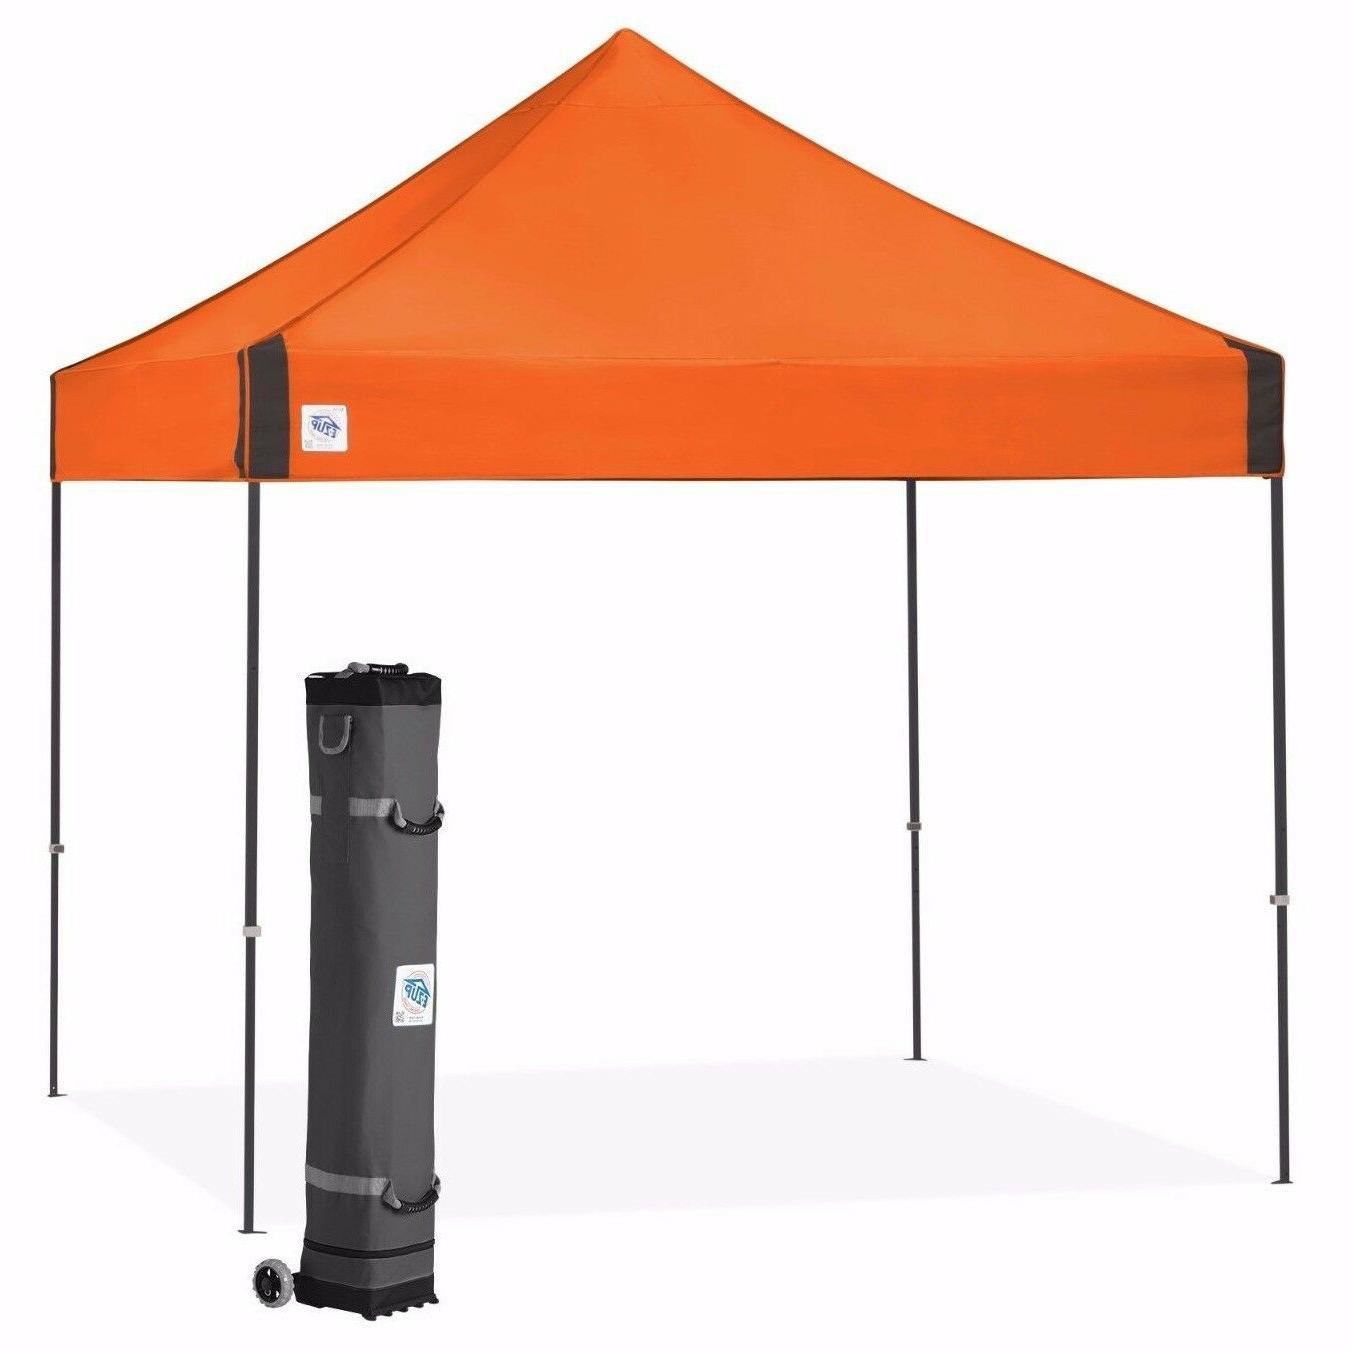 Vantagetm 10 Ft. W x 10 Ft. D Canopy, Steel Orange